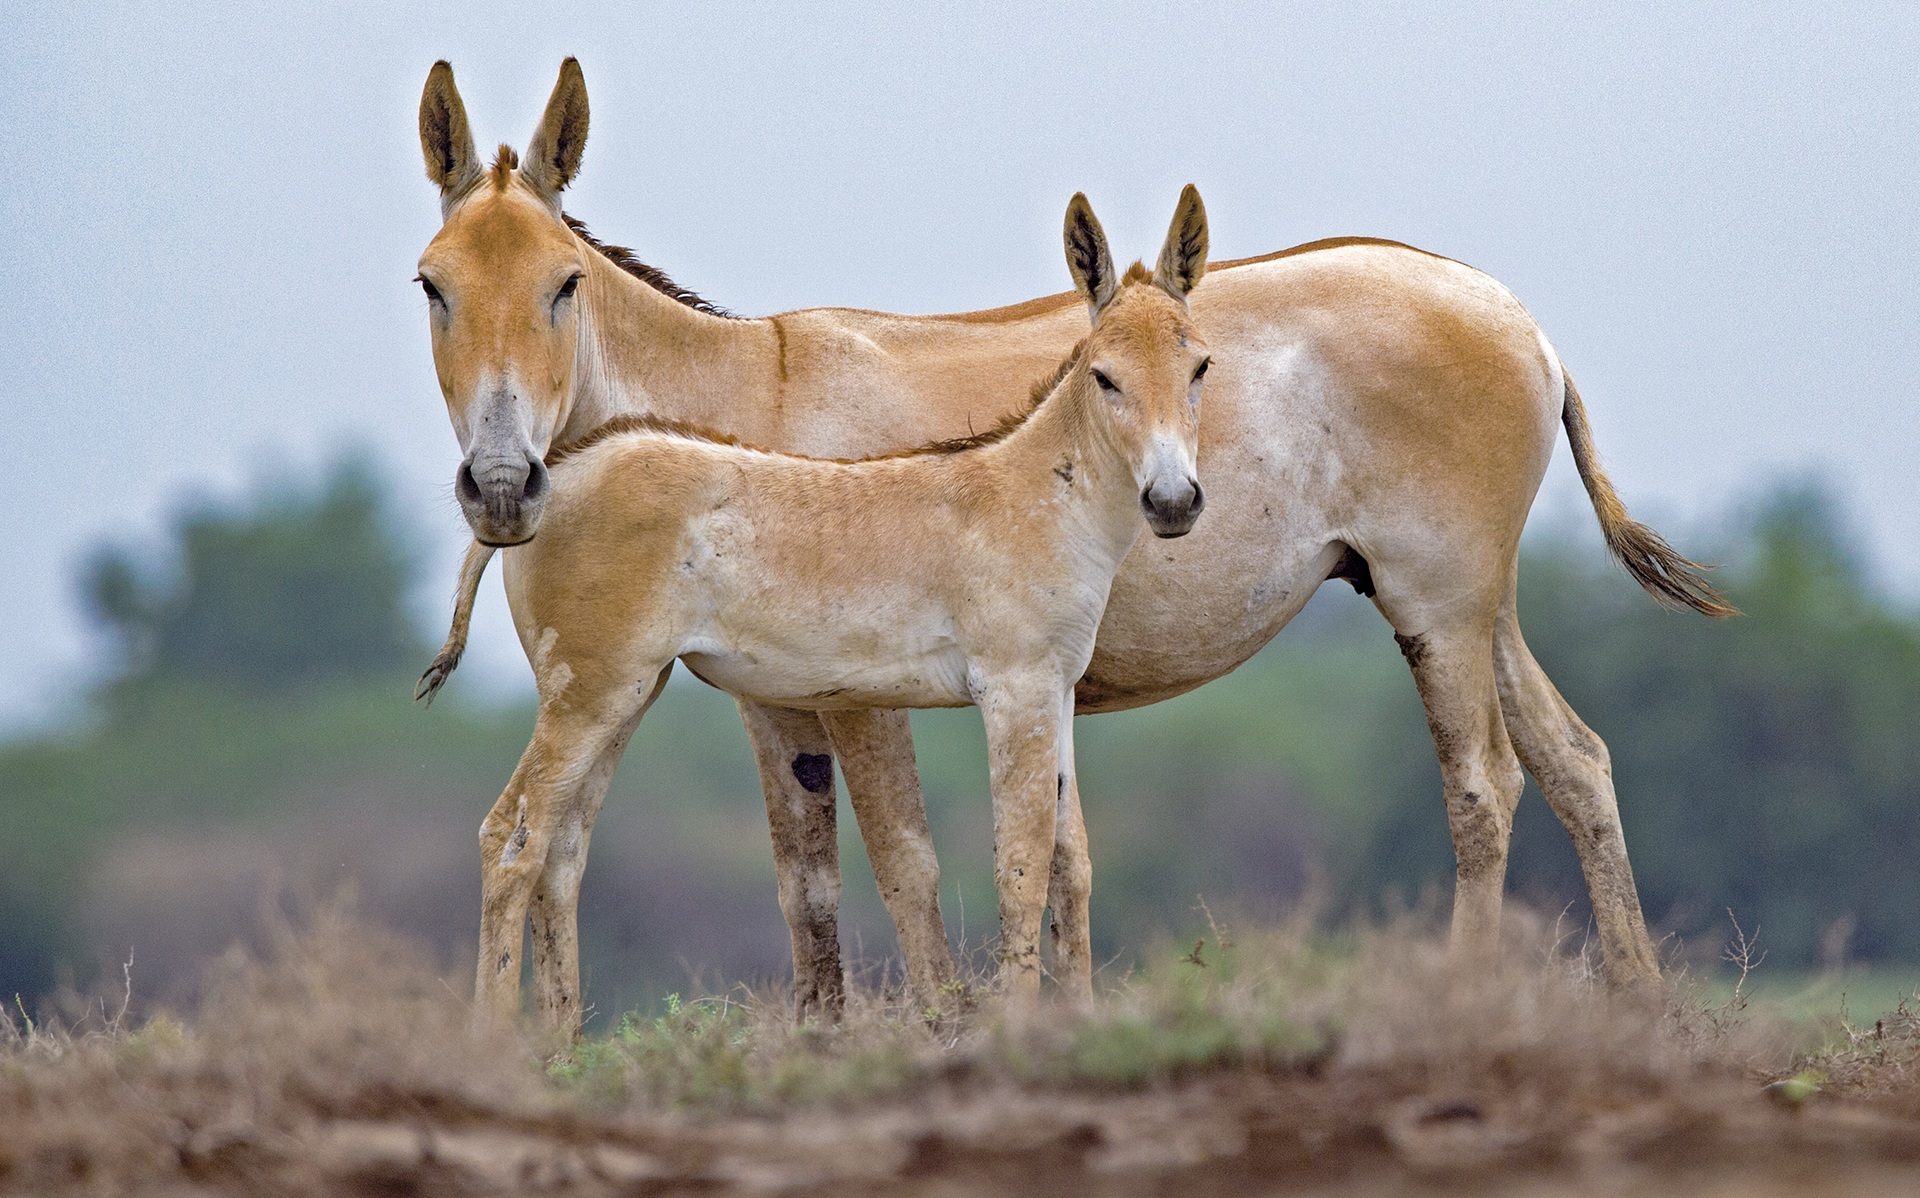 Like most herd animals, wild asses live in tight family units that provide safety in numbers, and helps mothers and foals alike. Photo: Dhritiman Mukherjee